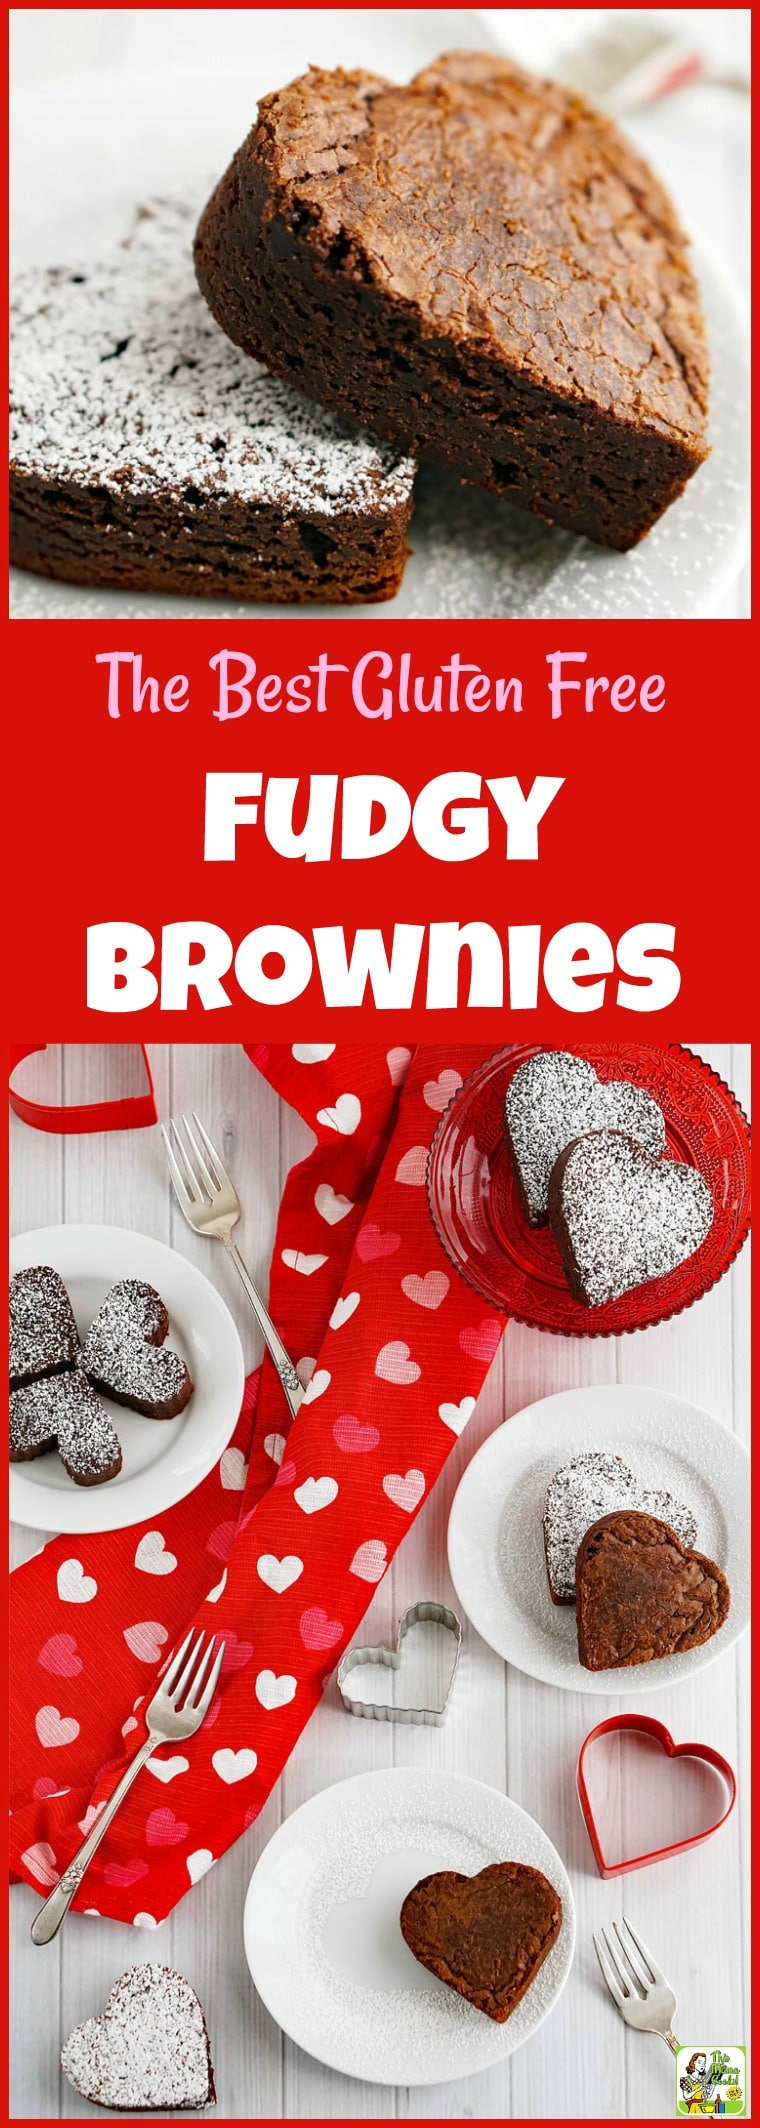 Looking for a gluten free fudgy brownie recipe? Try the Best Gluten Free Fudgy Brownies Ever! Click to get this easy gluten free brownie recipe. Perfect for Valentine\'s Day! #valentinesday #brownies #browniesrecipe #chocolate #glutenfreerecipes #glutenfreebaking #desserts #dessertrecipes #dessertideas #recipe #easy #recipeoftheday #healthyrecipes #glutenfree #easyrecipes